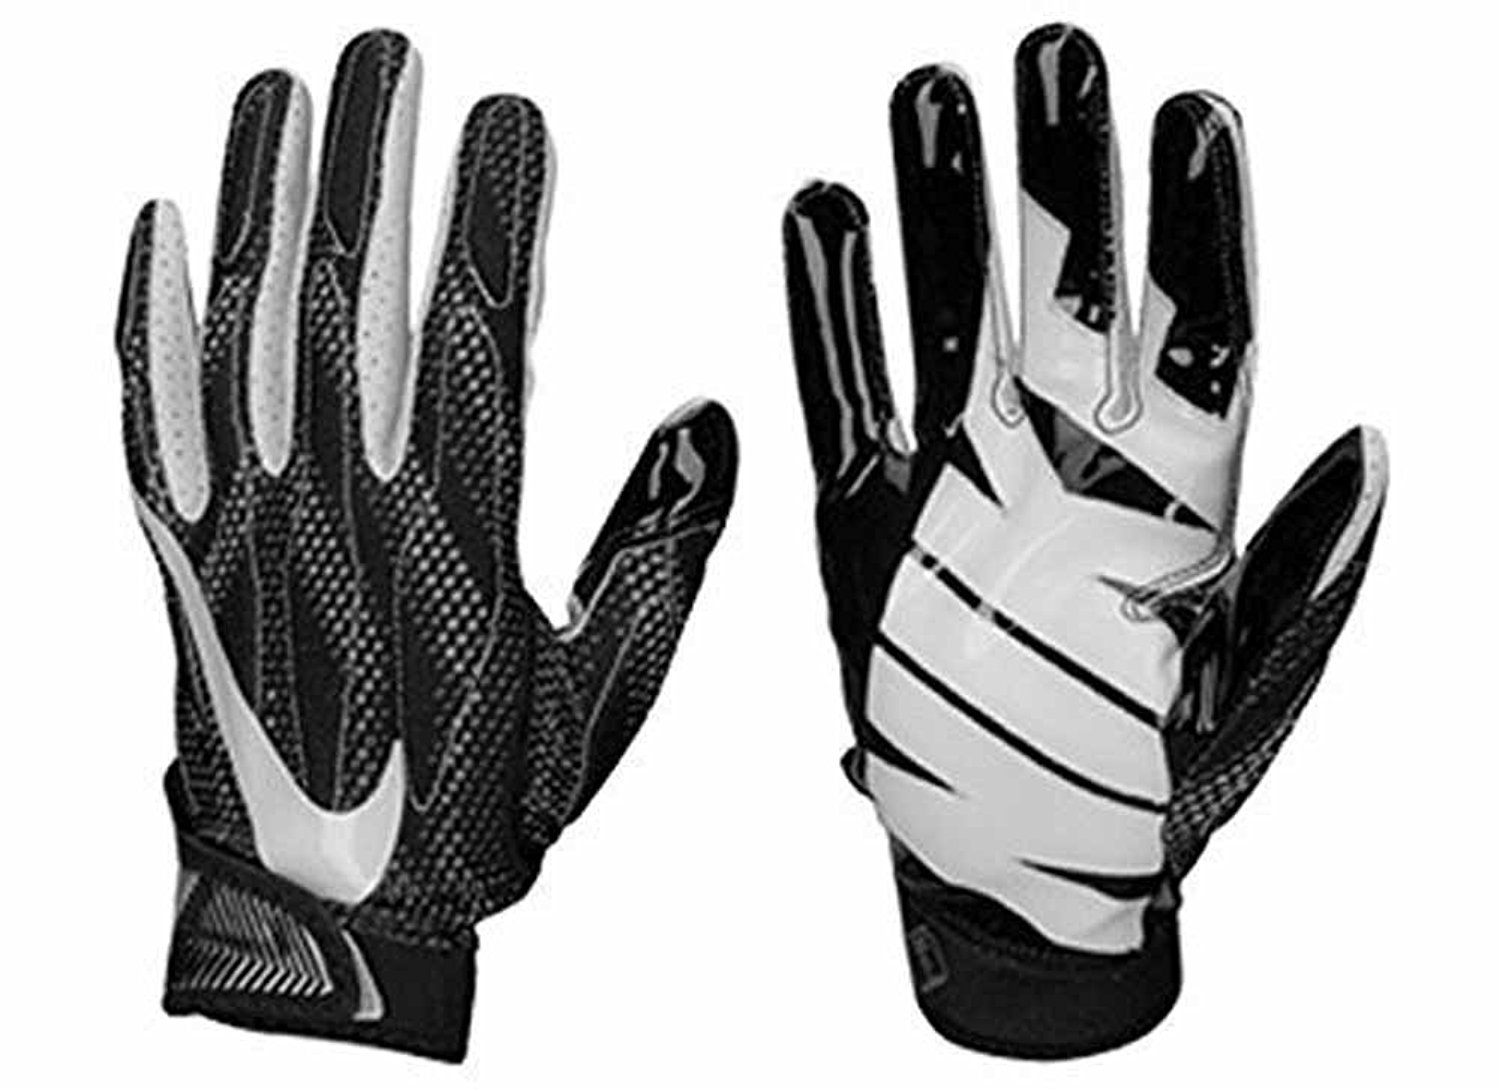 1cdae88448c Get Quotations · Nike Men's Superbad 4 Football Gloves